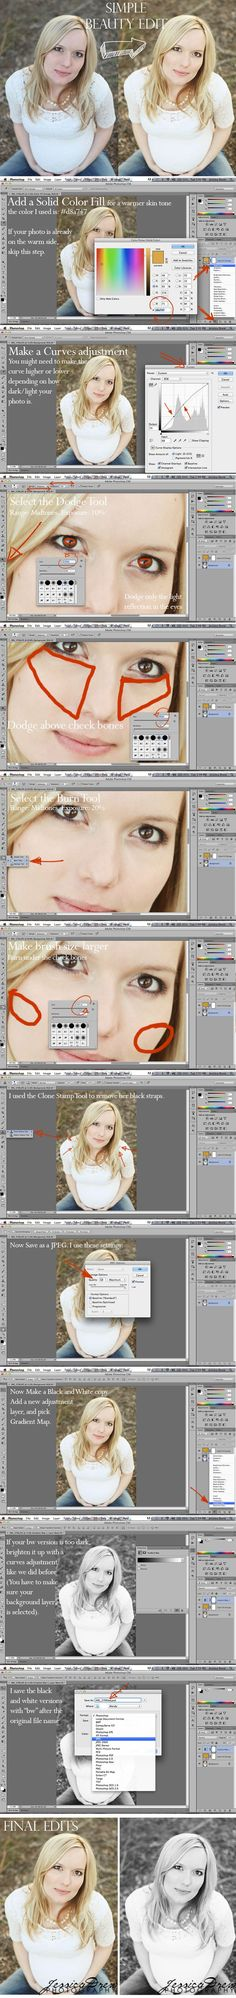 Photography Tips | Simple Beauty Photo Editing in Photoshop CS6